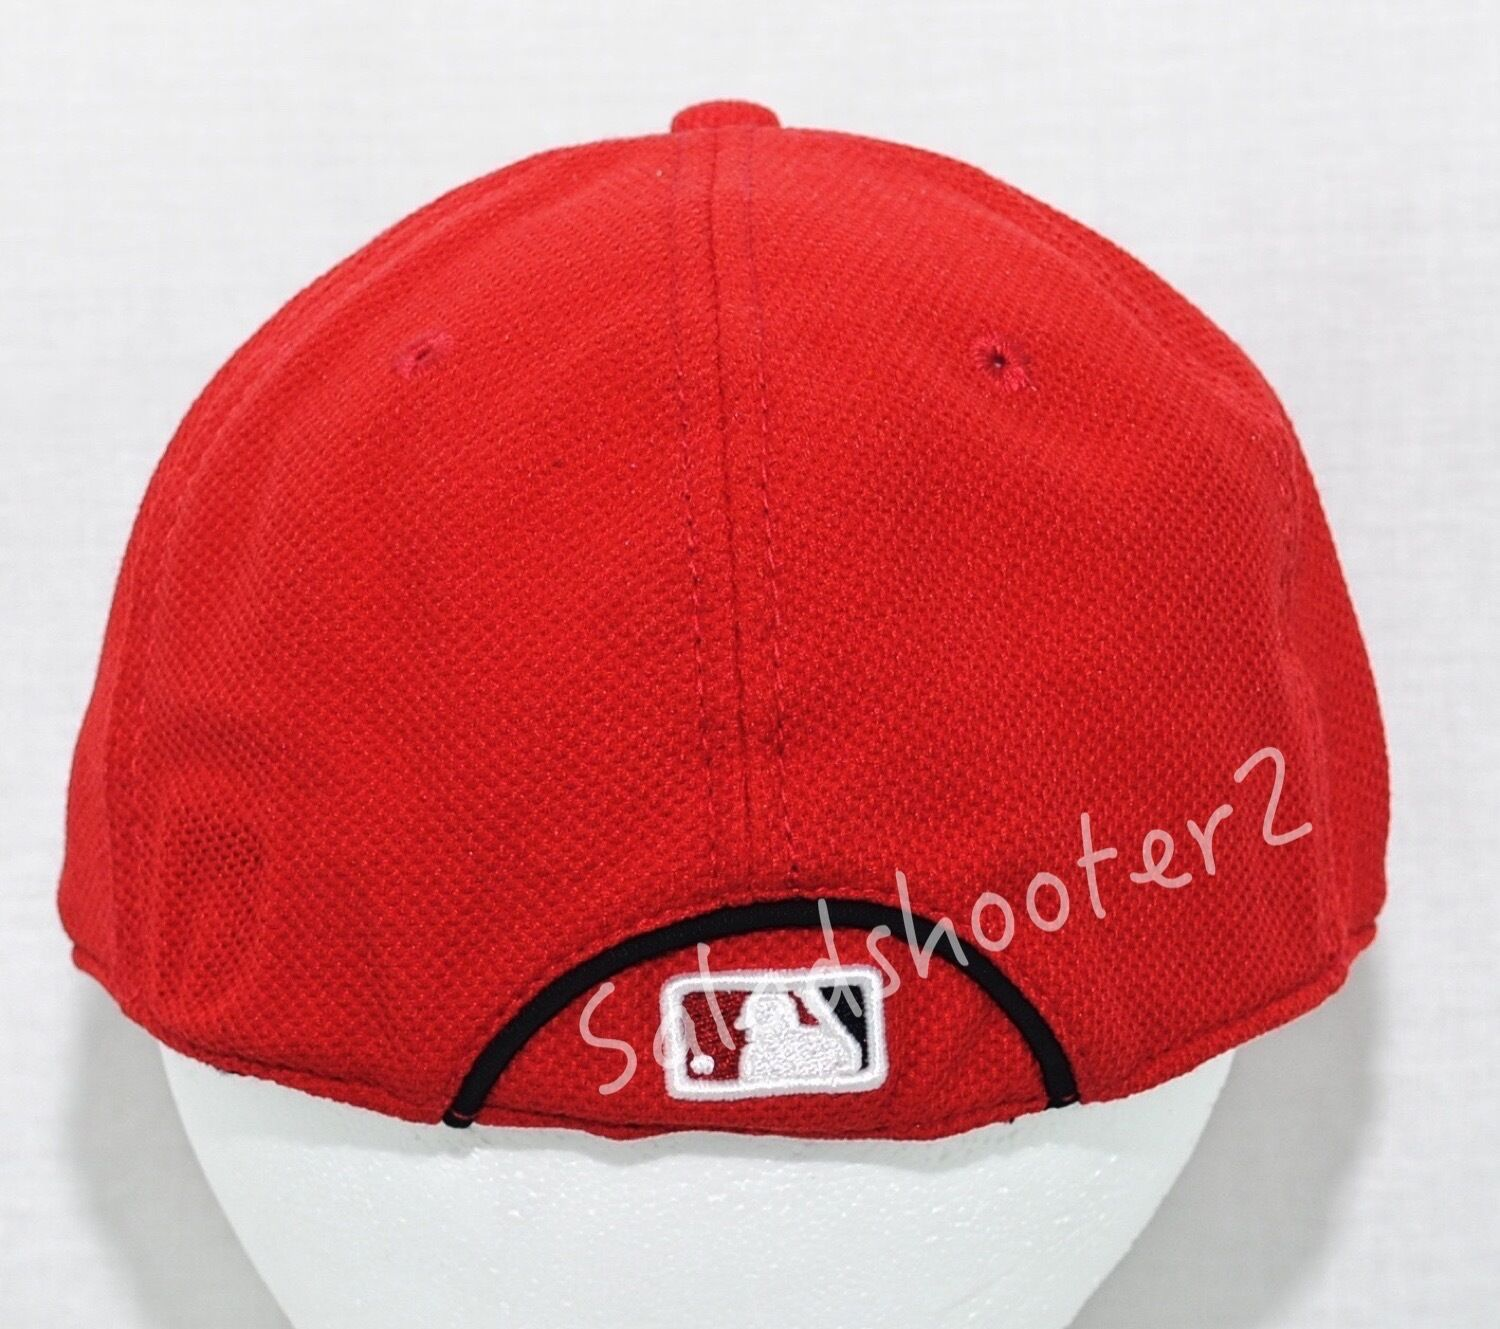 check out b99d6 482d0 ... italy red washington nationals stretch fitted licensed baseball hat  small medium mlb licensed fitted d05d04 828be